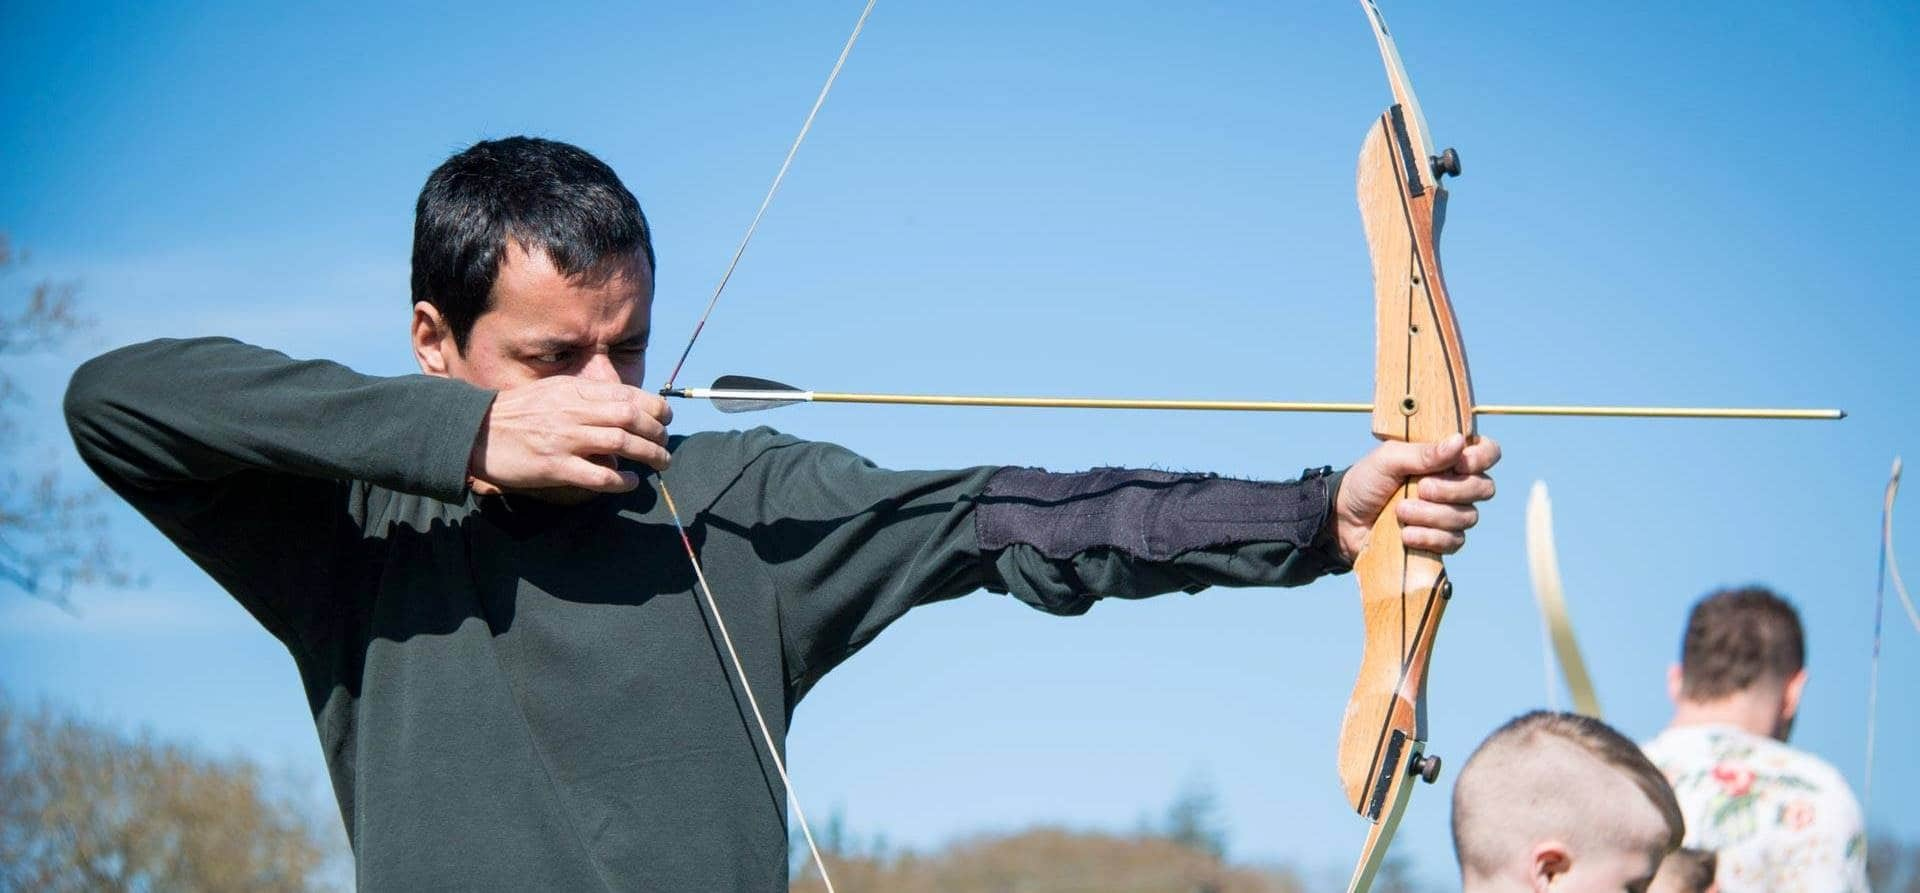 Archery Experience - Adult-5